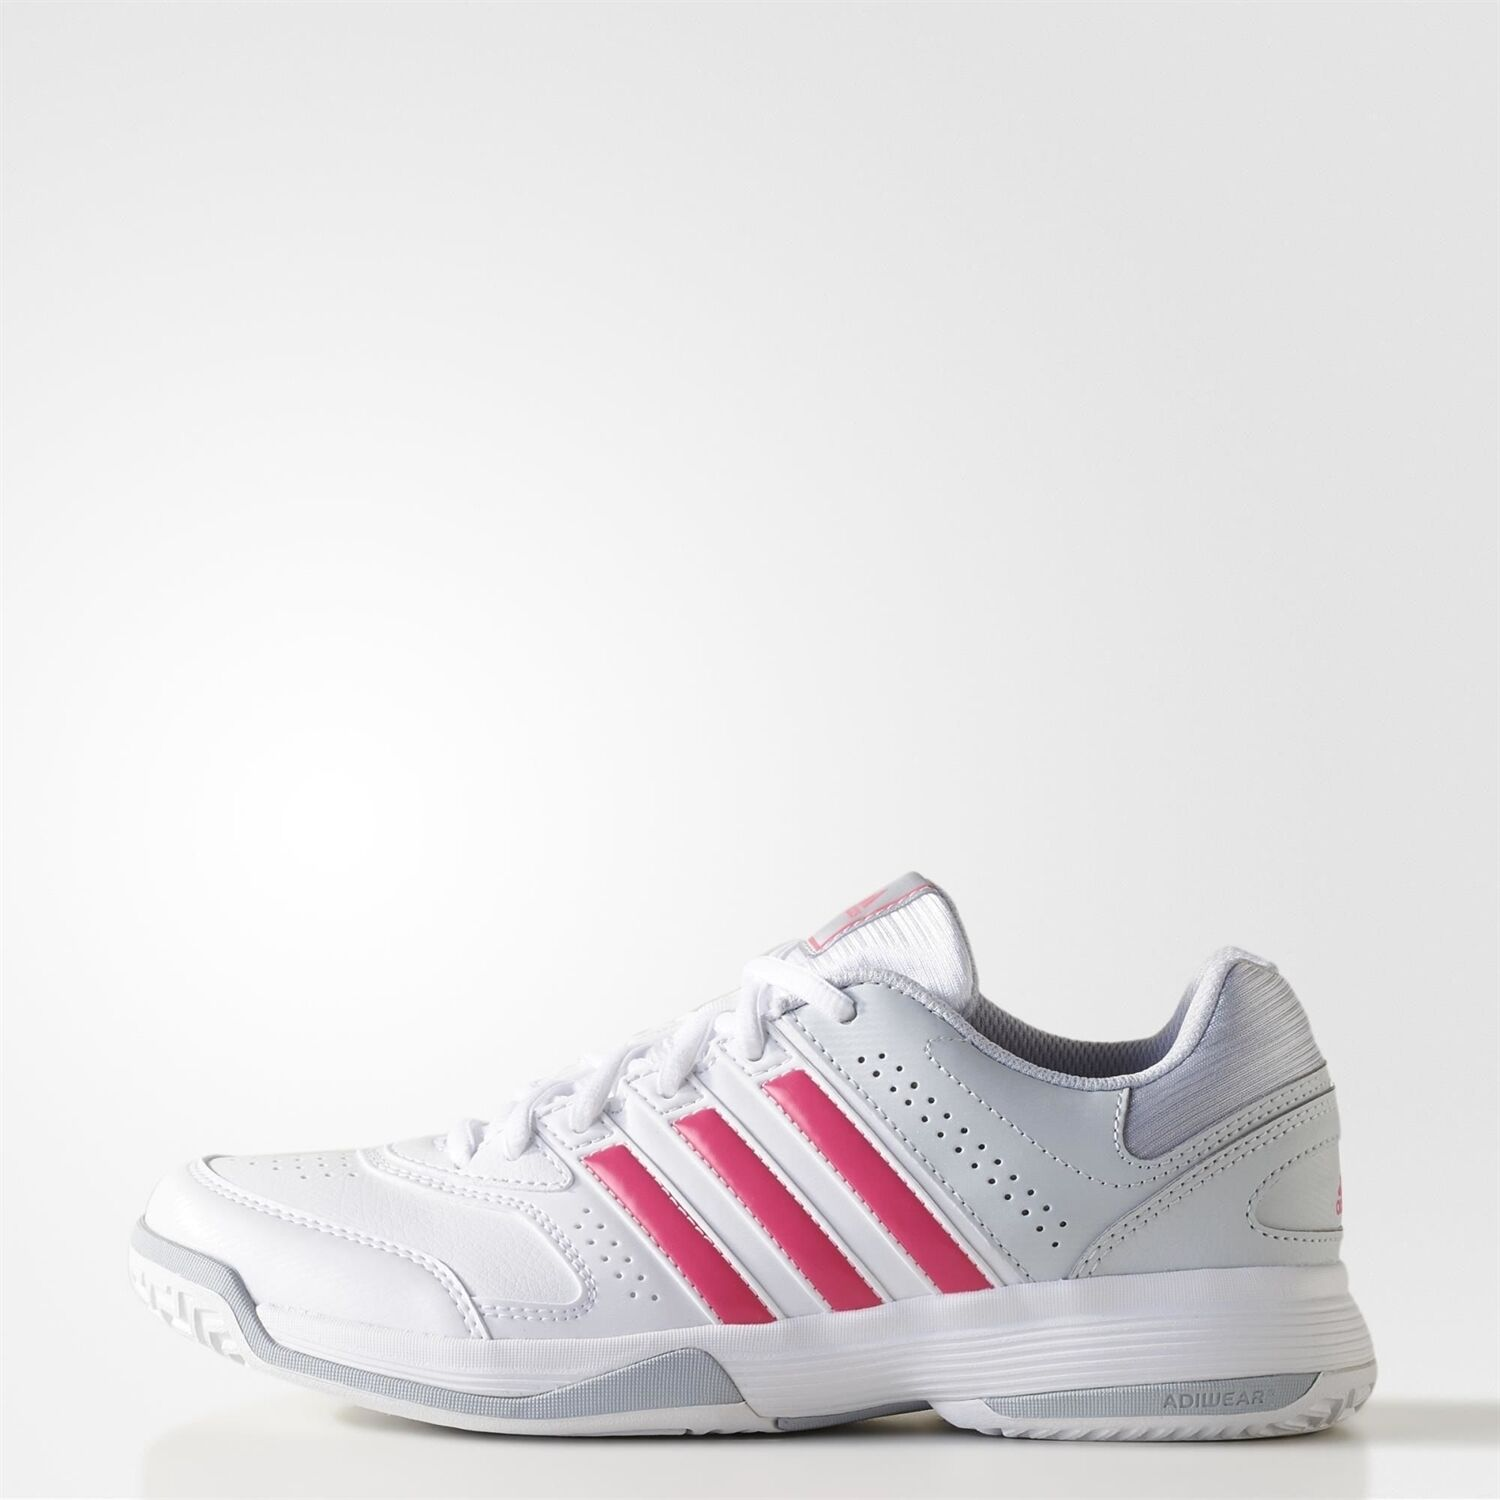 Adidas Adidas Adidas Response Aspire STR Womens Running Sports Fashion Lightweight Trainers f92a49